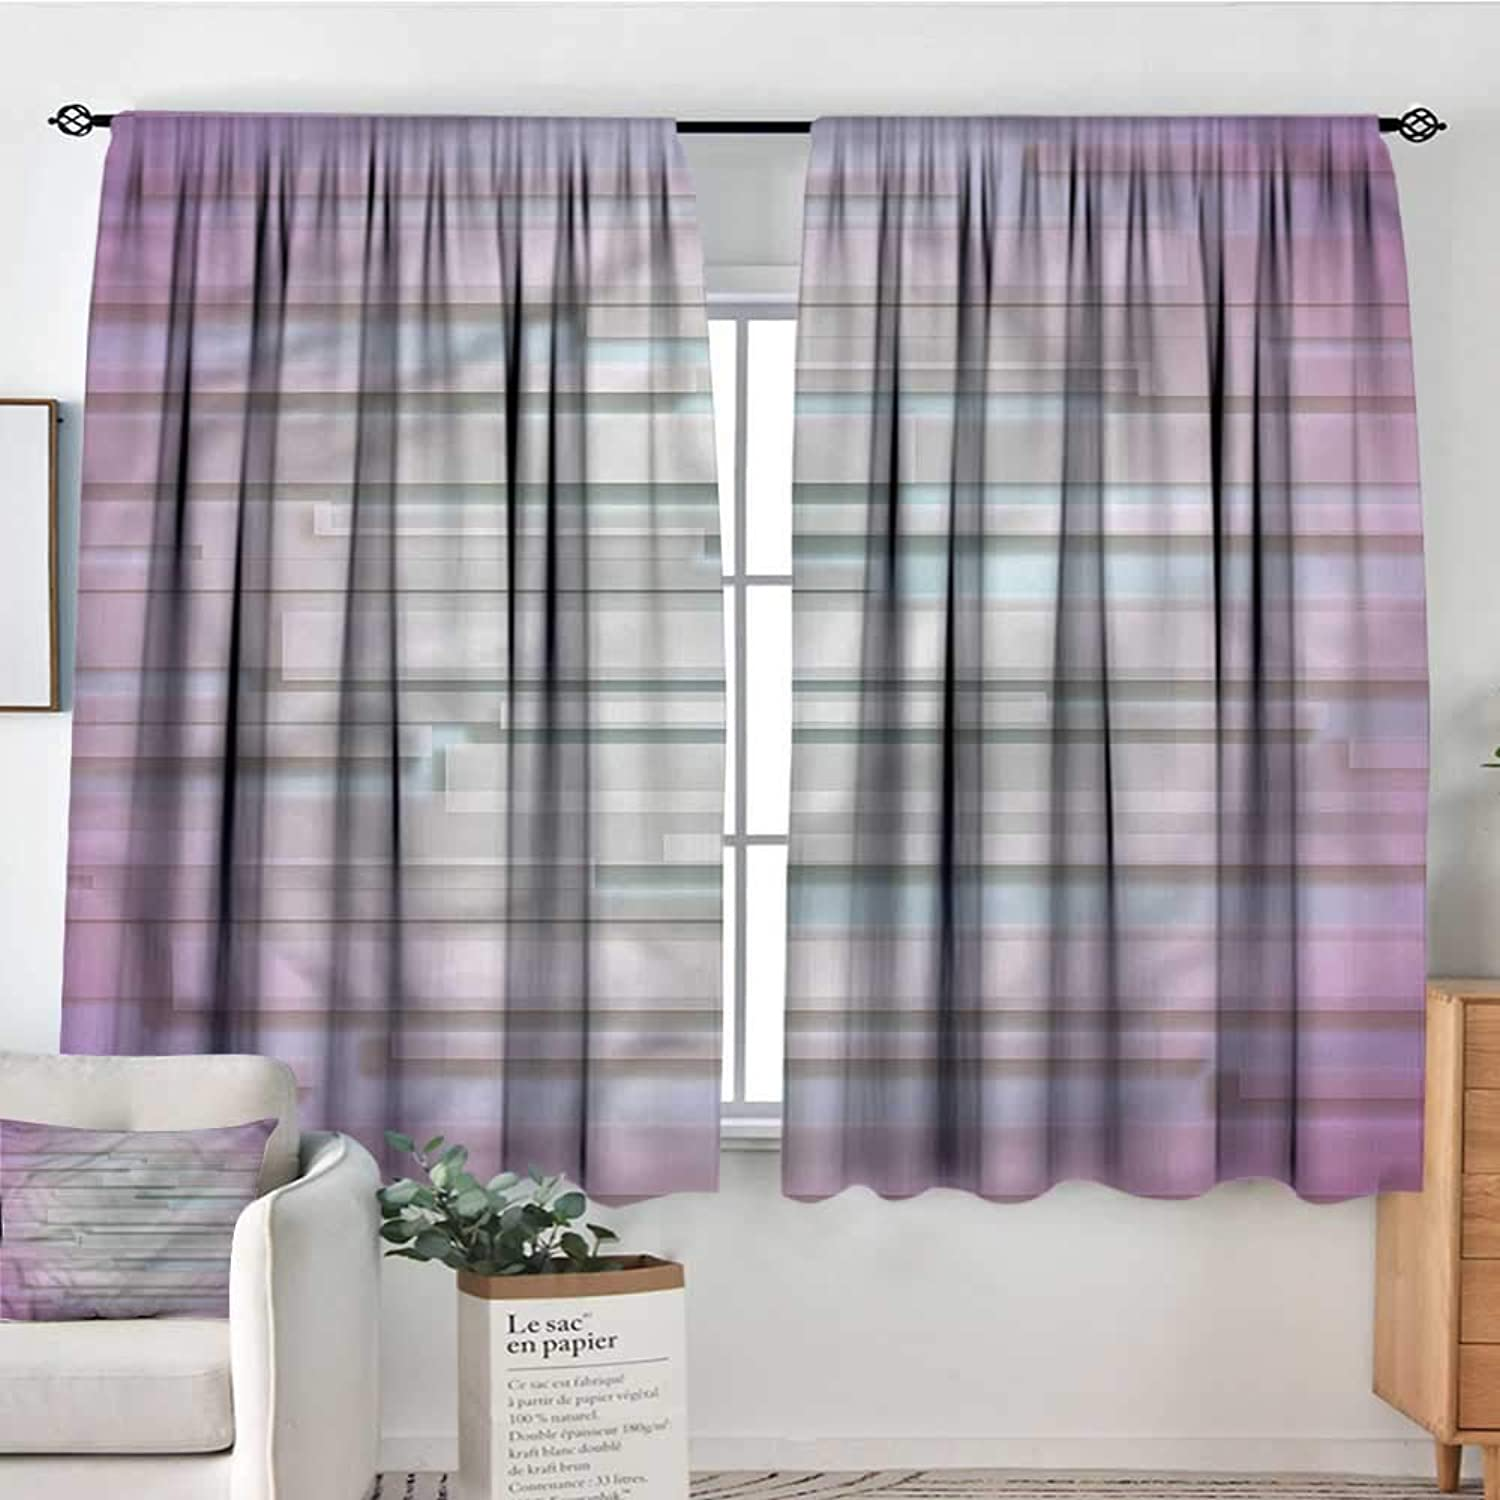 Sanring Minimalist,Rod Curtains Minimal Unusual Figures 52 x63  Backout Curtains for Kids Iving Room